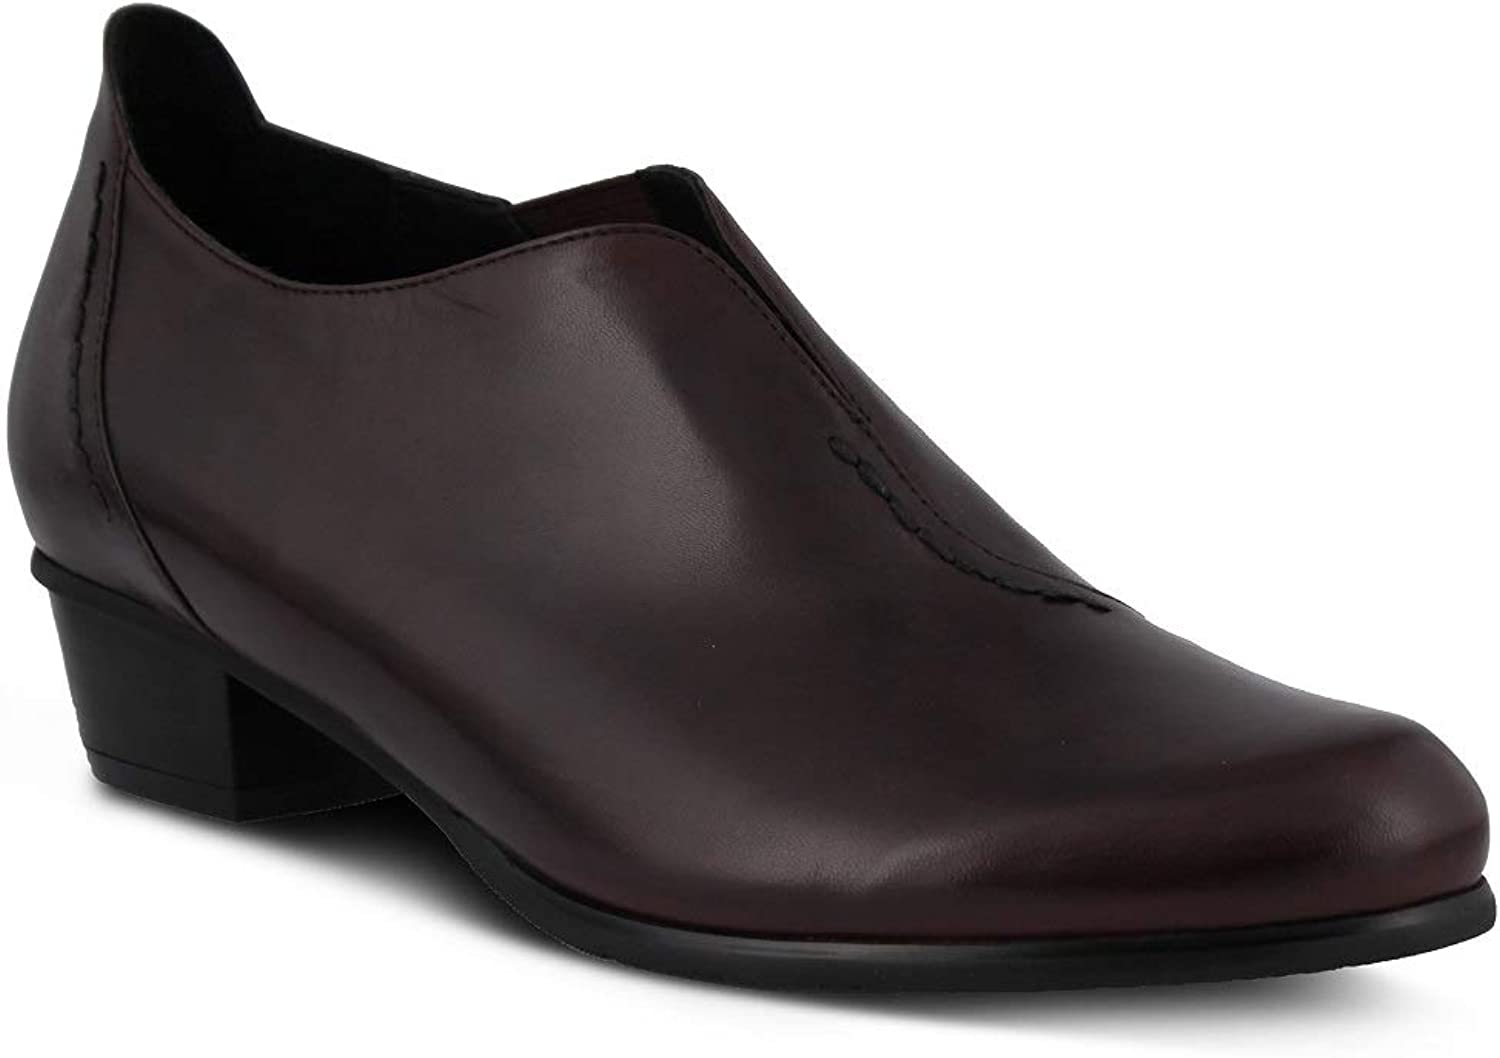 Spring Step Women's Melbourne Shootie   color Bordeaux   Leather Shootie